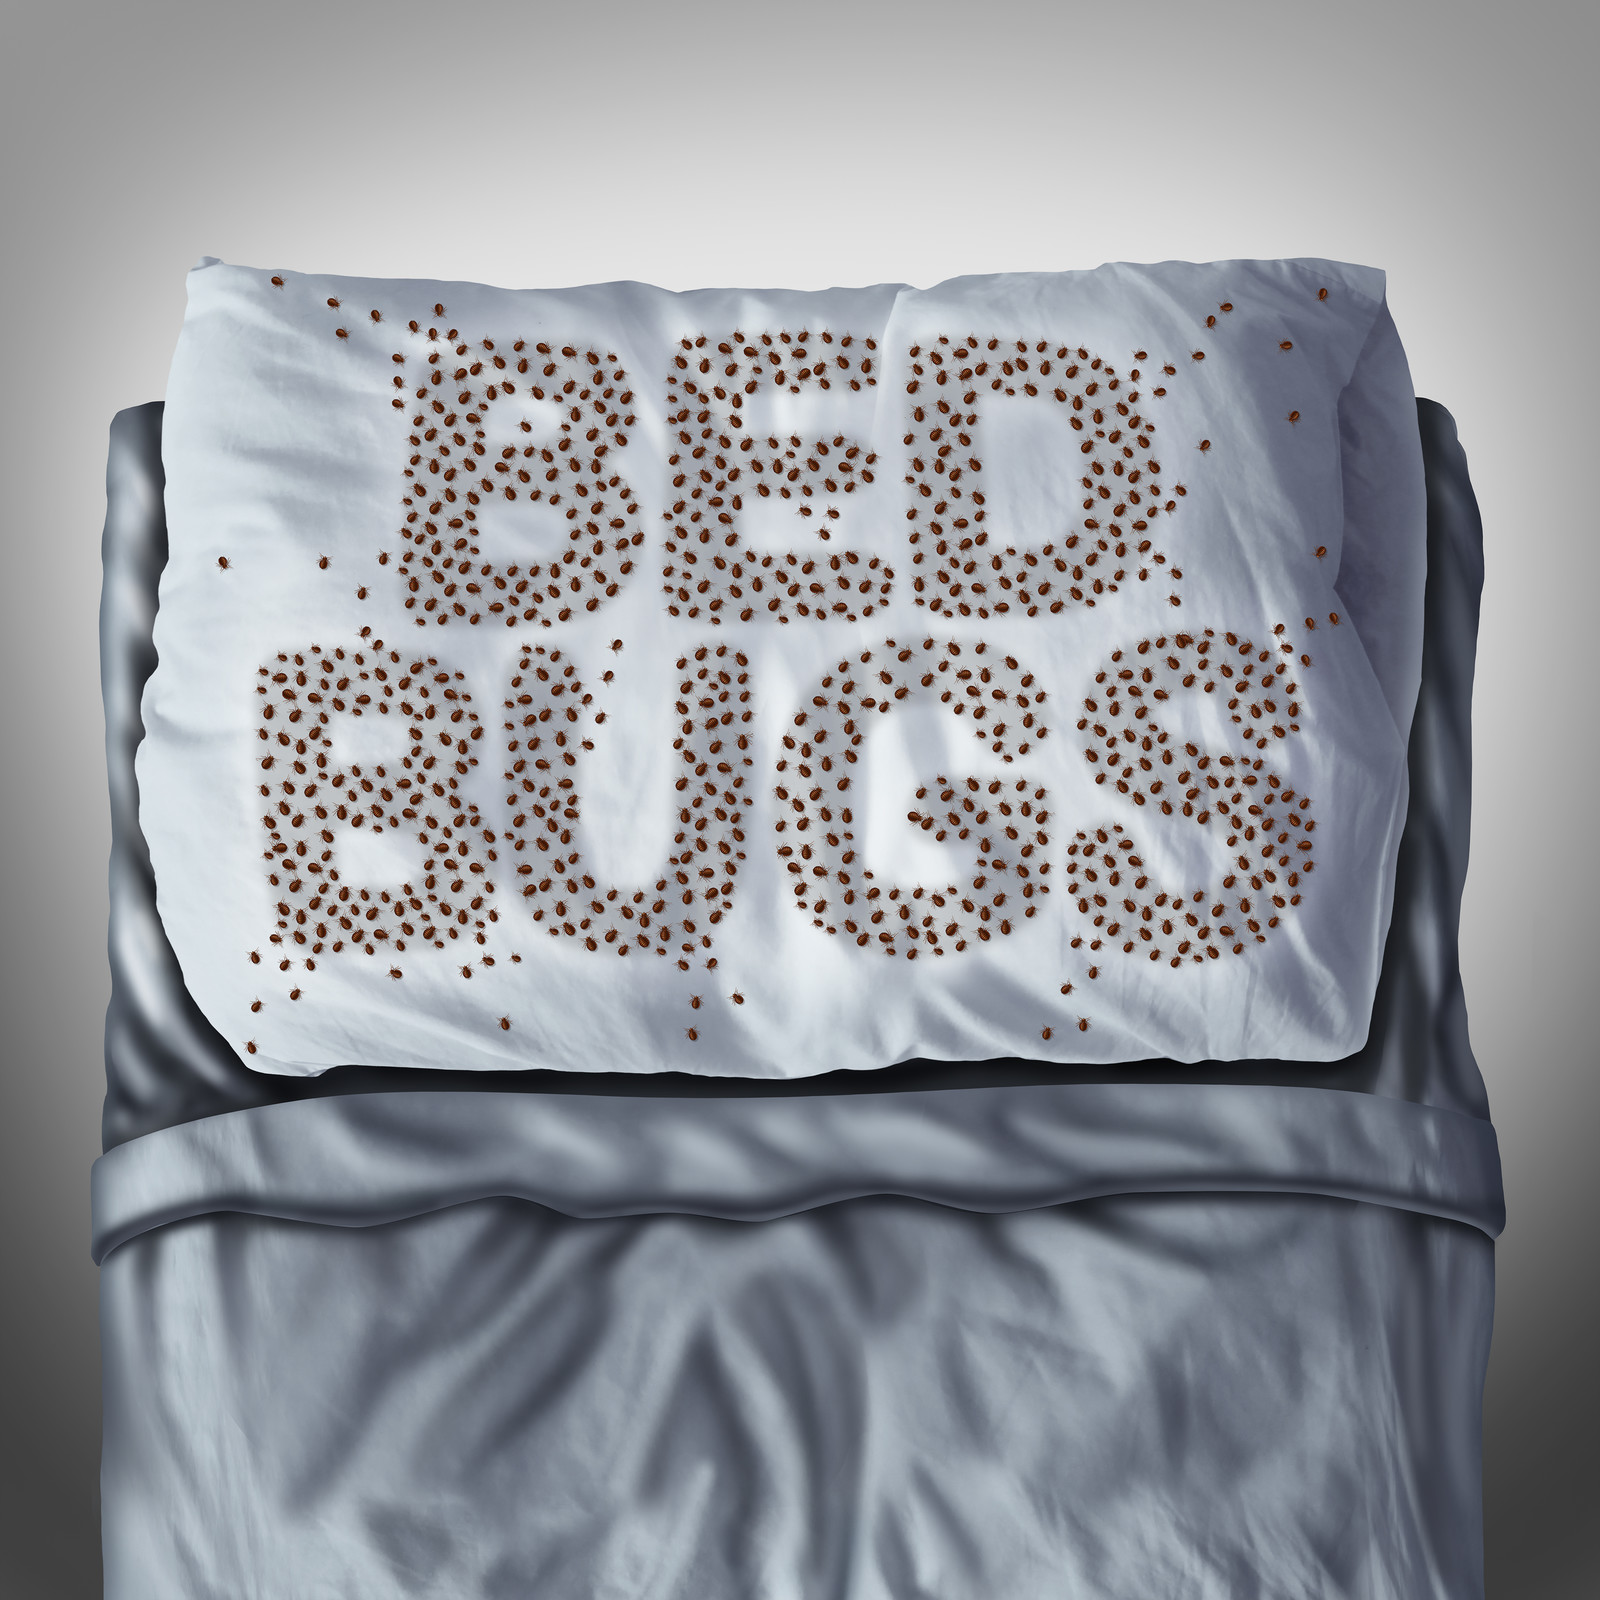 Bed Bugs on a Pillow